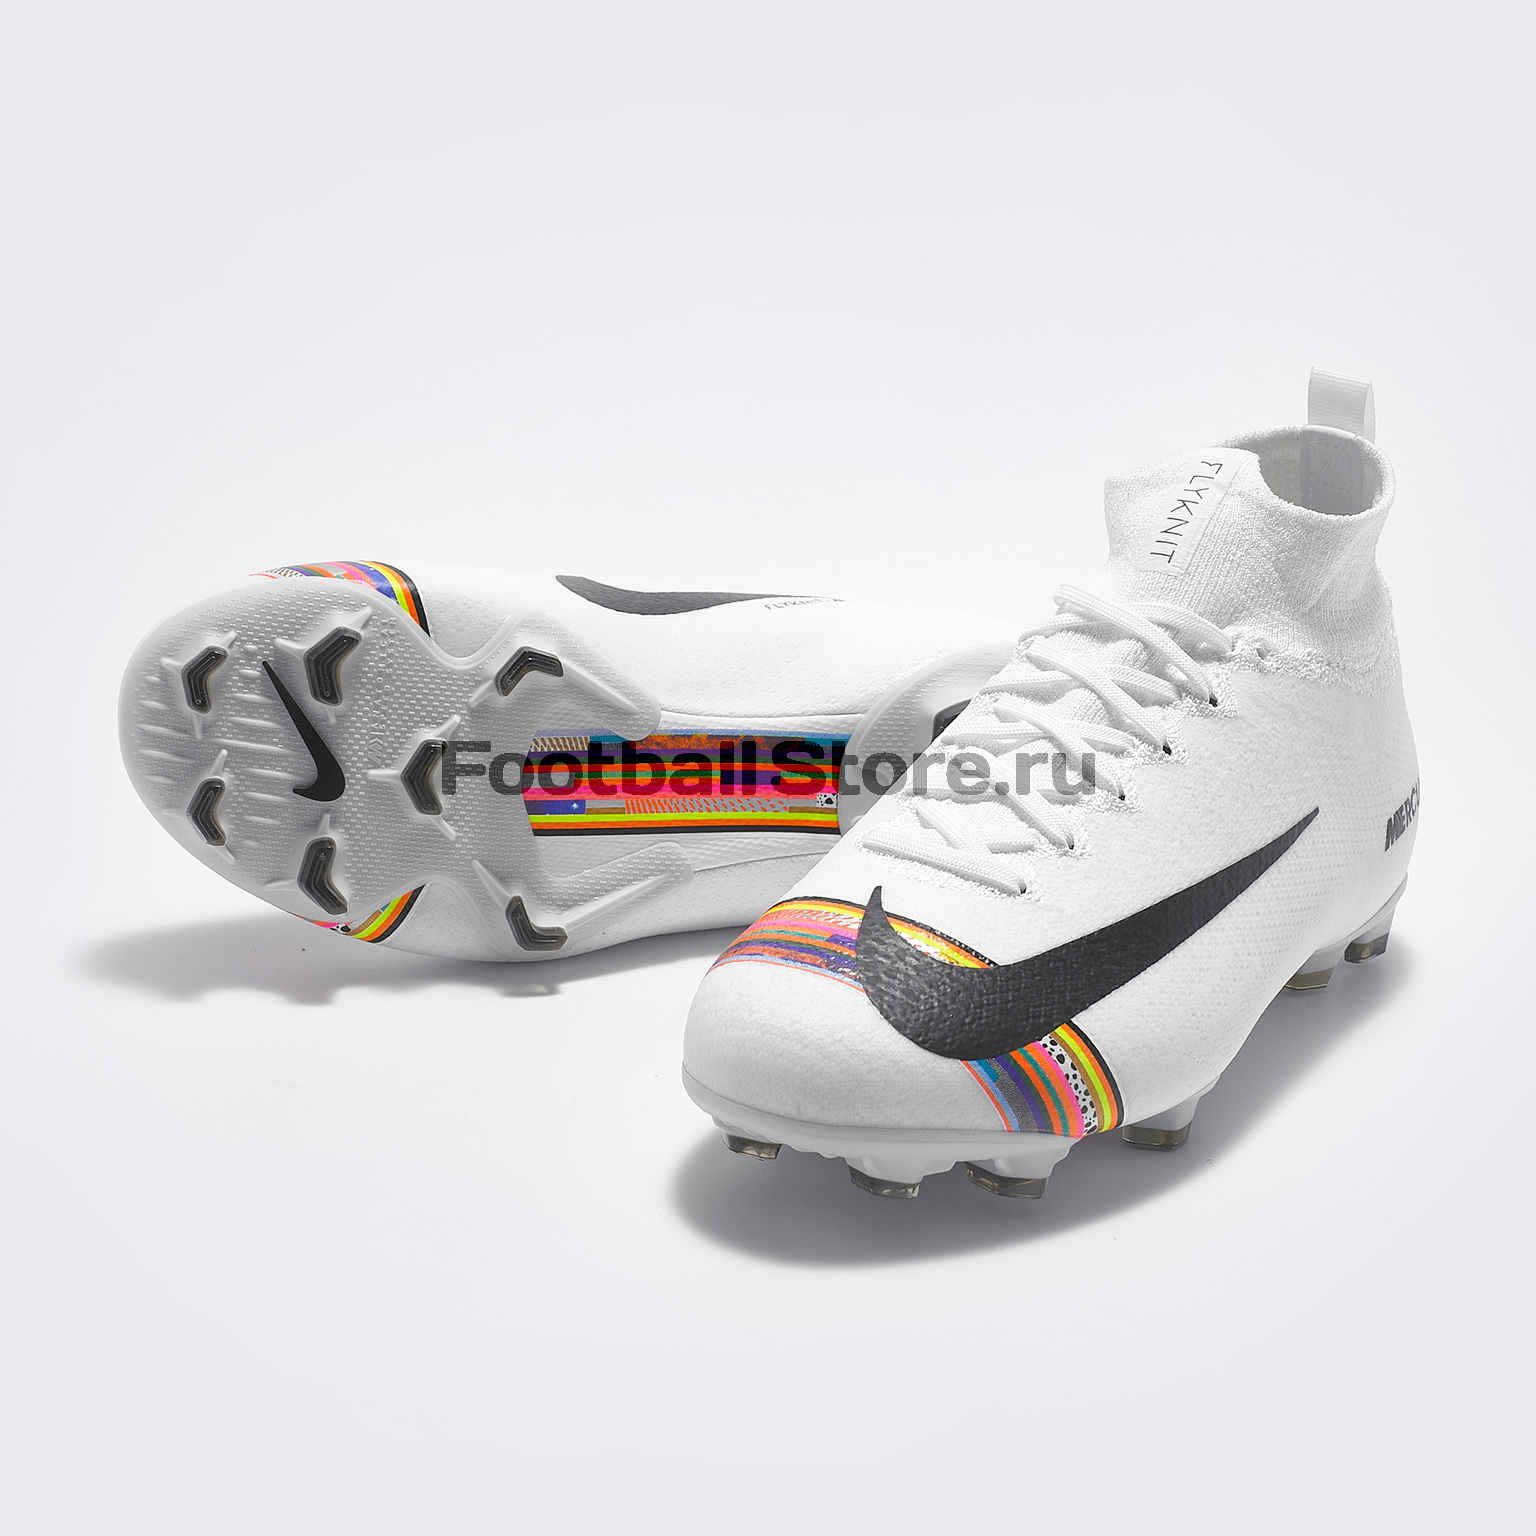 Бутсы детские Nike Superfly 6 Elite CR7 FG AJ3086-109 бутсы nike mercurial vapor cr7 fg 684860 014